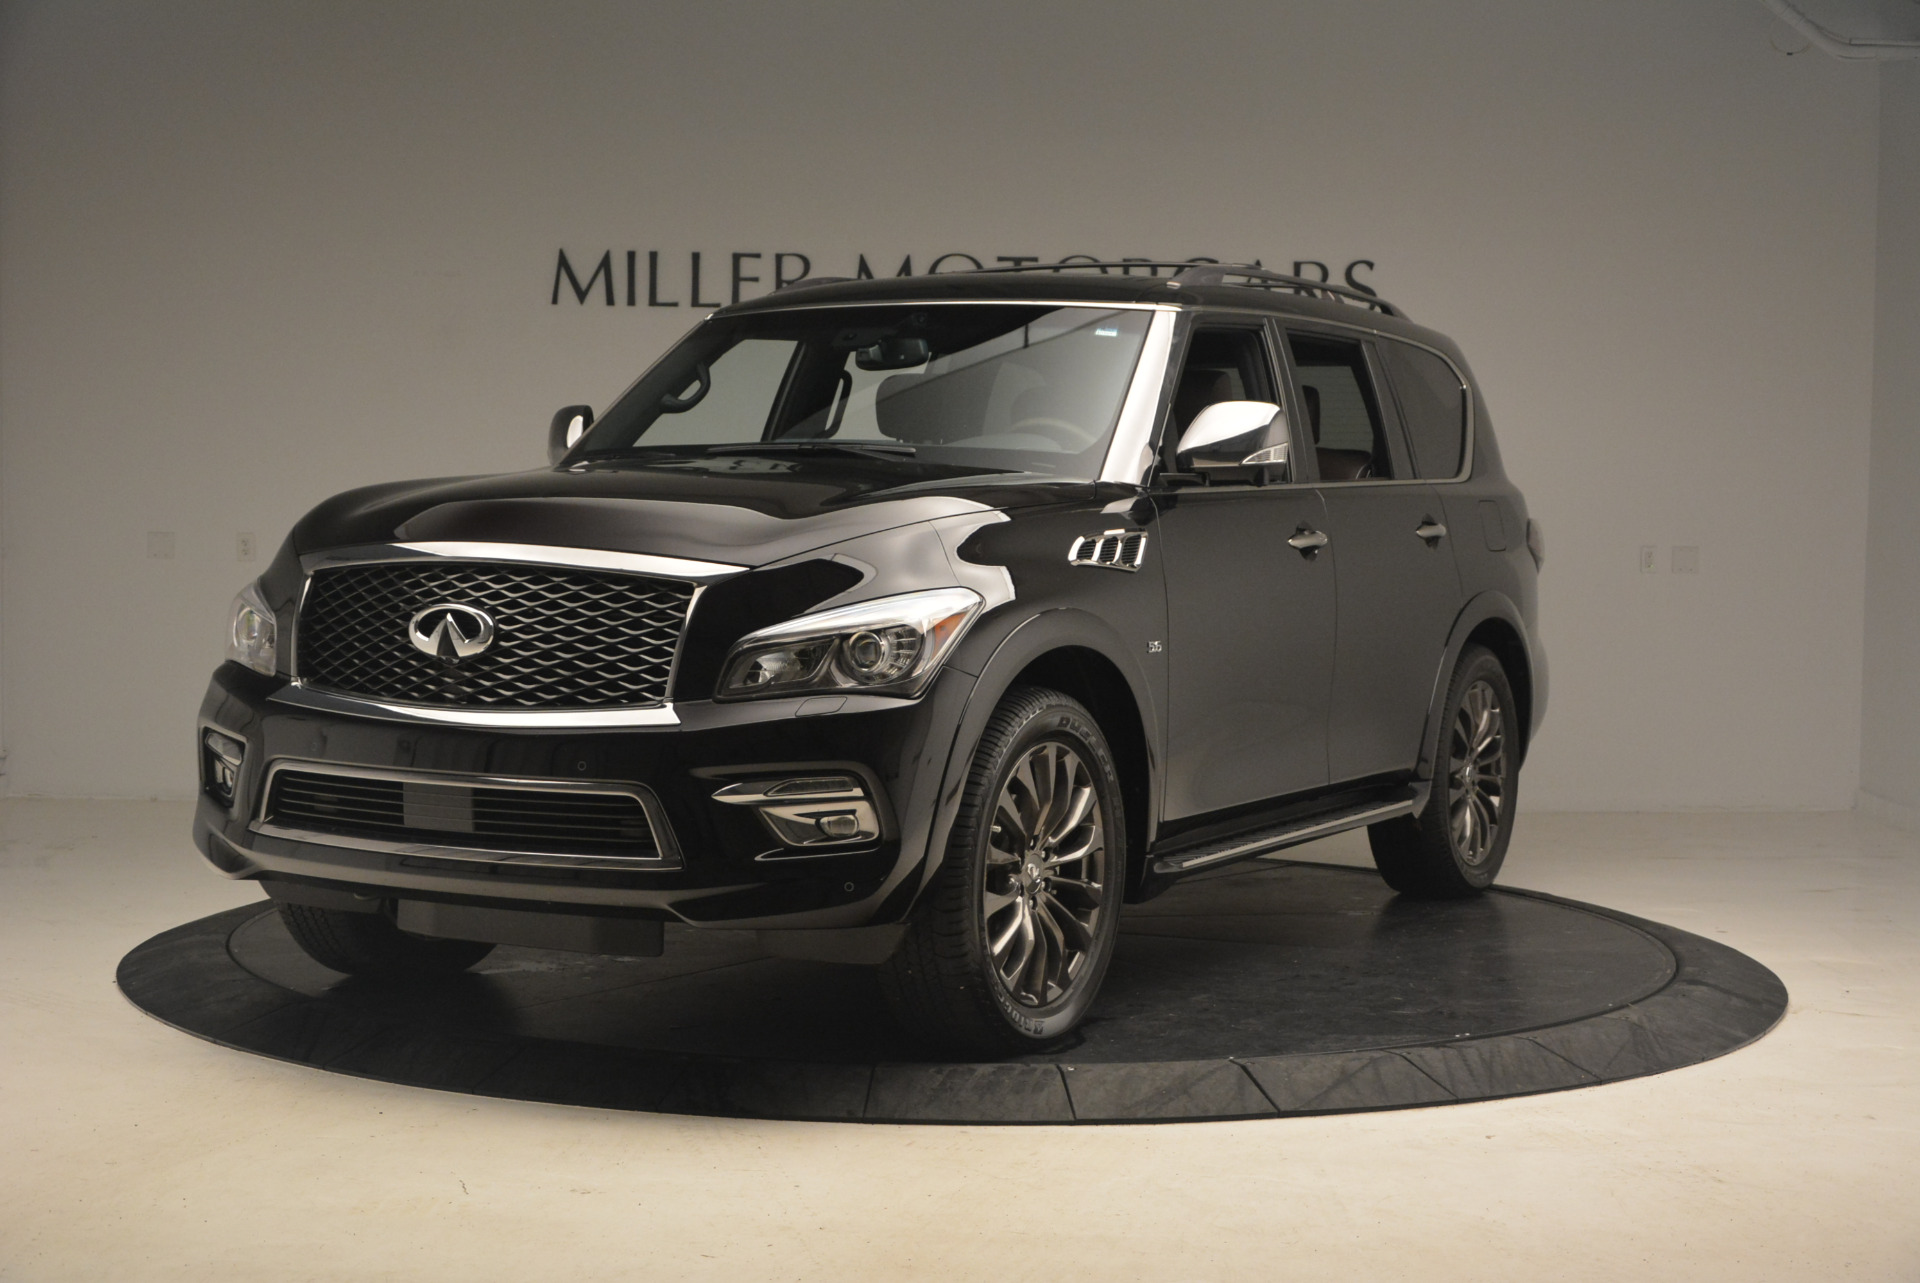 Used 2015 INFINITI QX80 Limited 4WD for sale Sold at McLaren Greenwich in Greenwich CT 06830 1